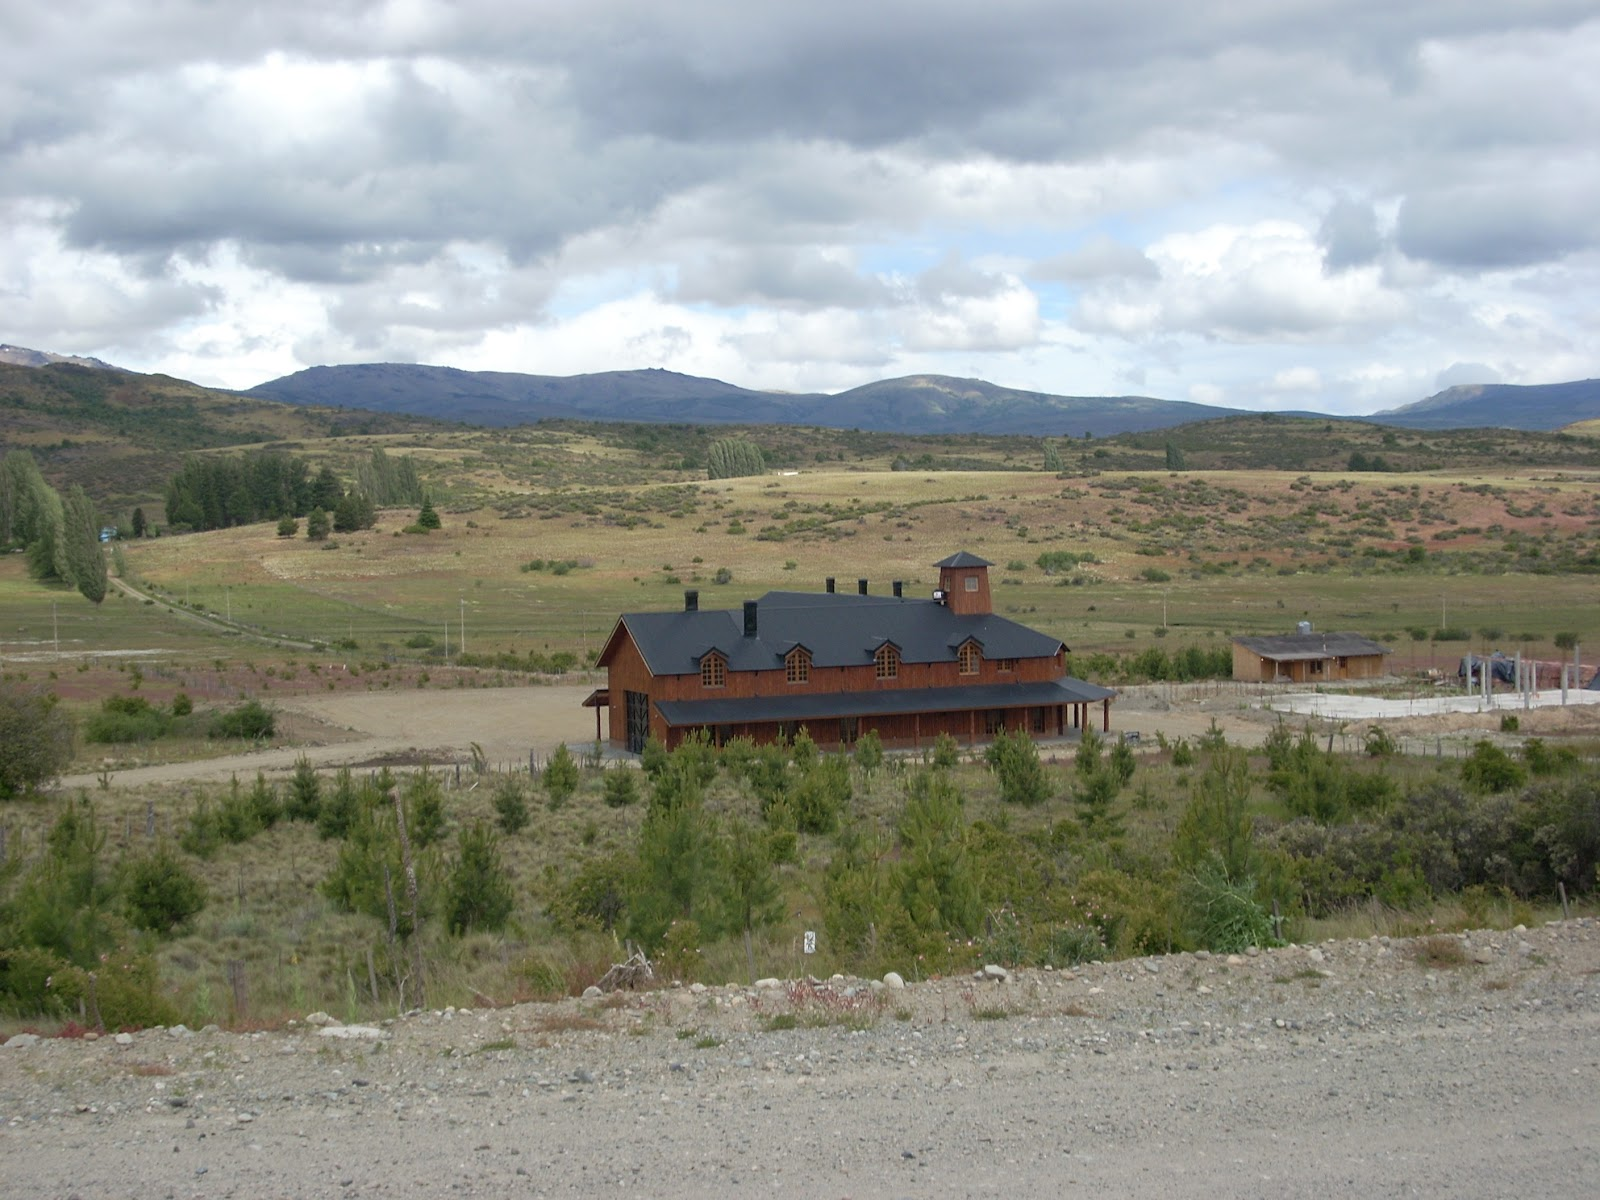 Random large house in the middle of nowhere. Someone has money.